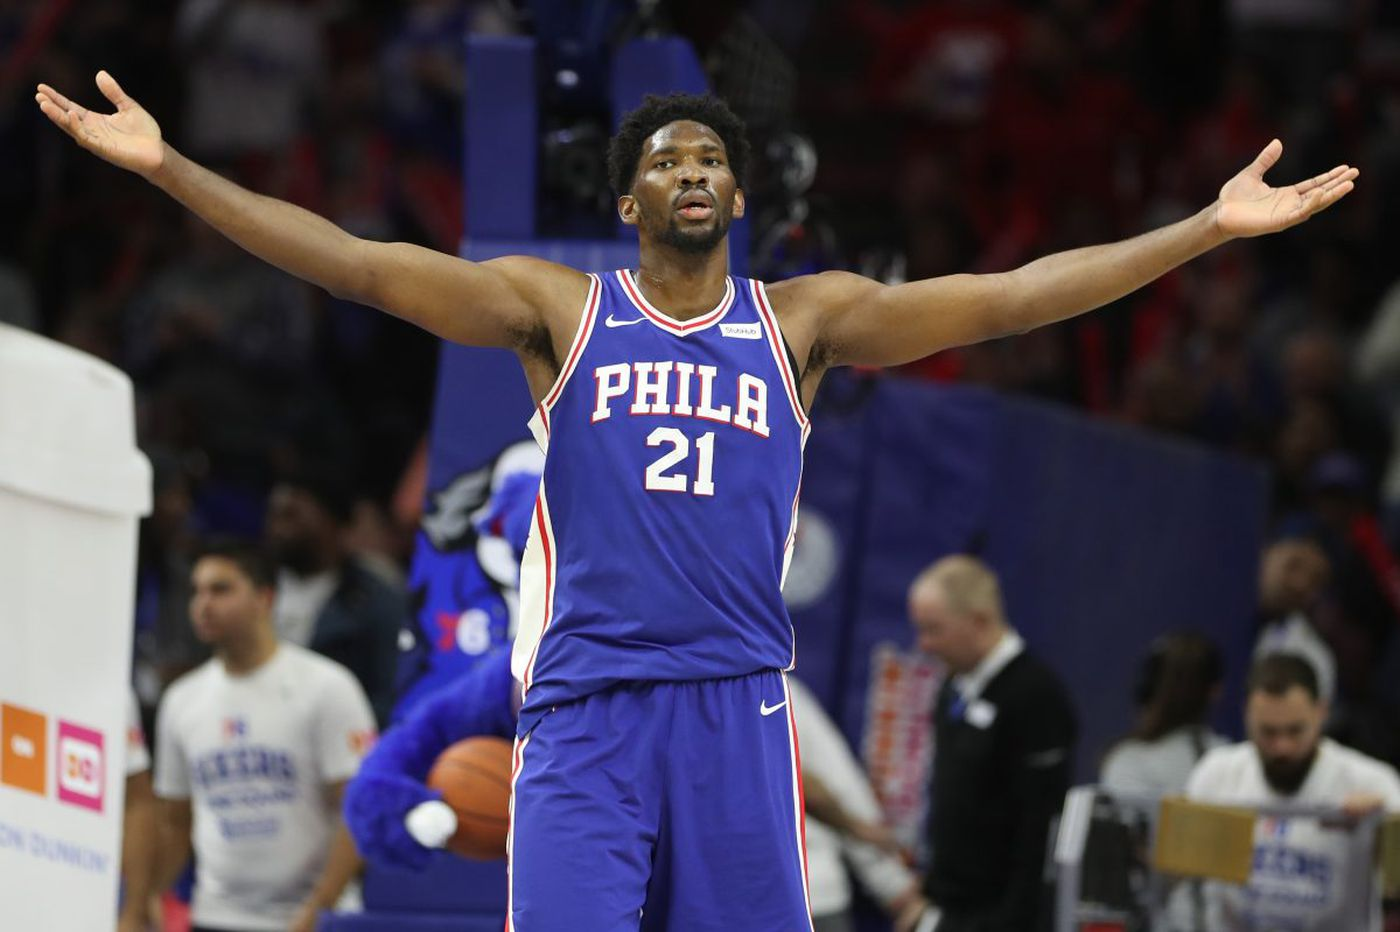 Comparing Joel Embiid s career through 50 games to Wilt Chamberlain ... 452dd58c7